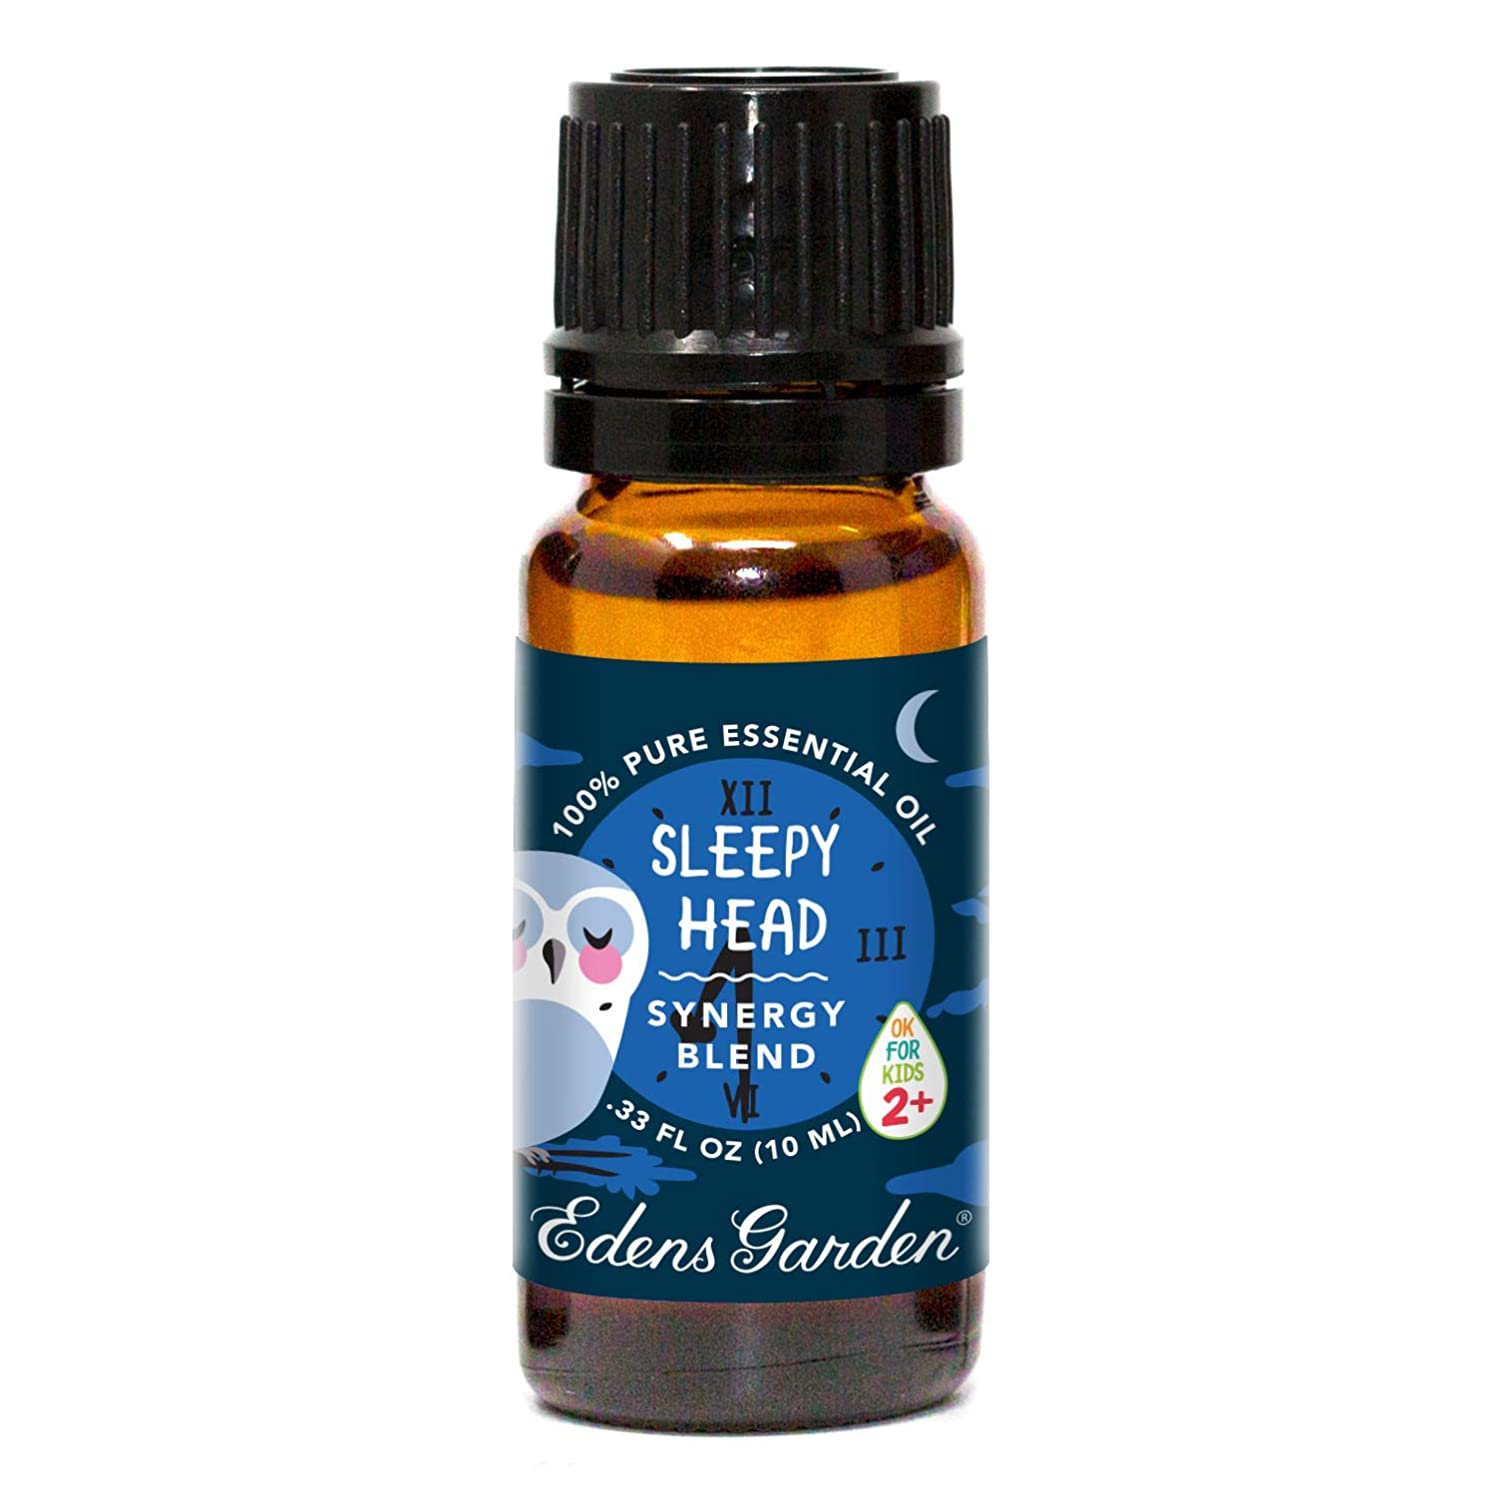 "Edens Garden Sleepy Head""OK For Kids"" Essential Oil Synergy Blend, 100% Pure Therapeutic Grade (Child Safe 2+, Sleep & Stress), 10 ml"